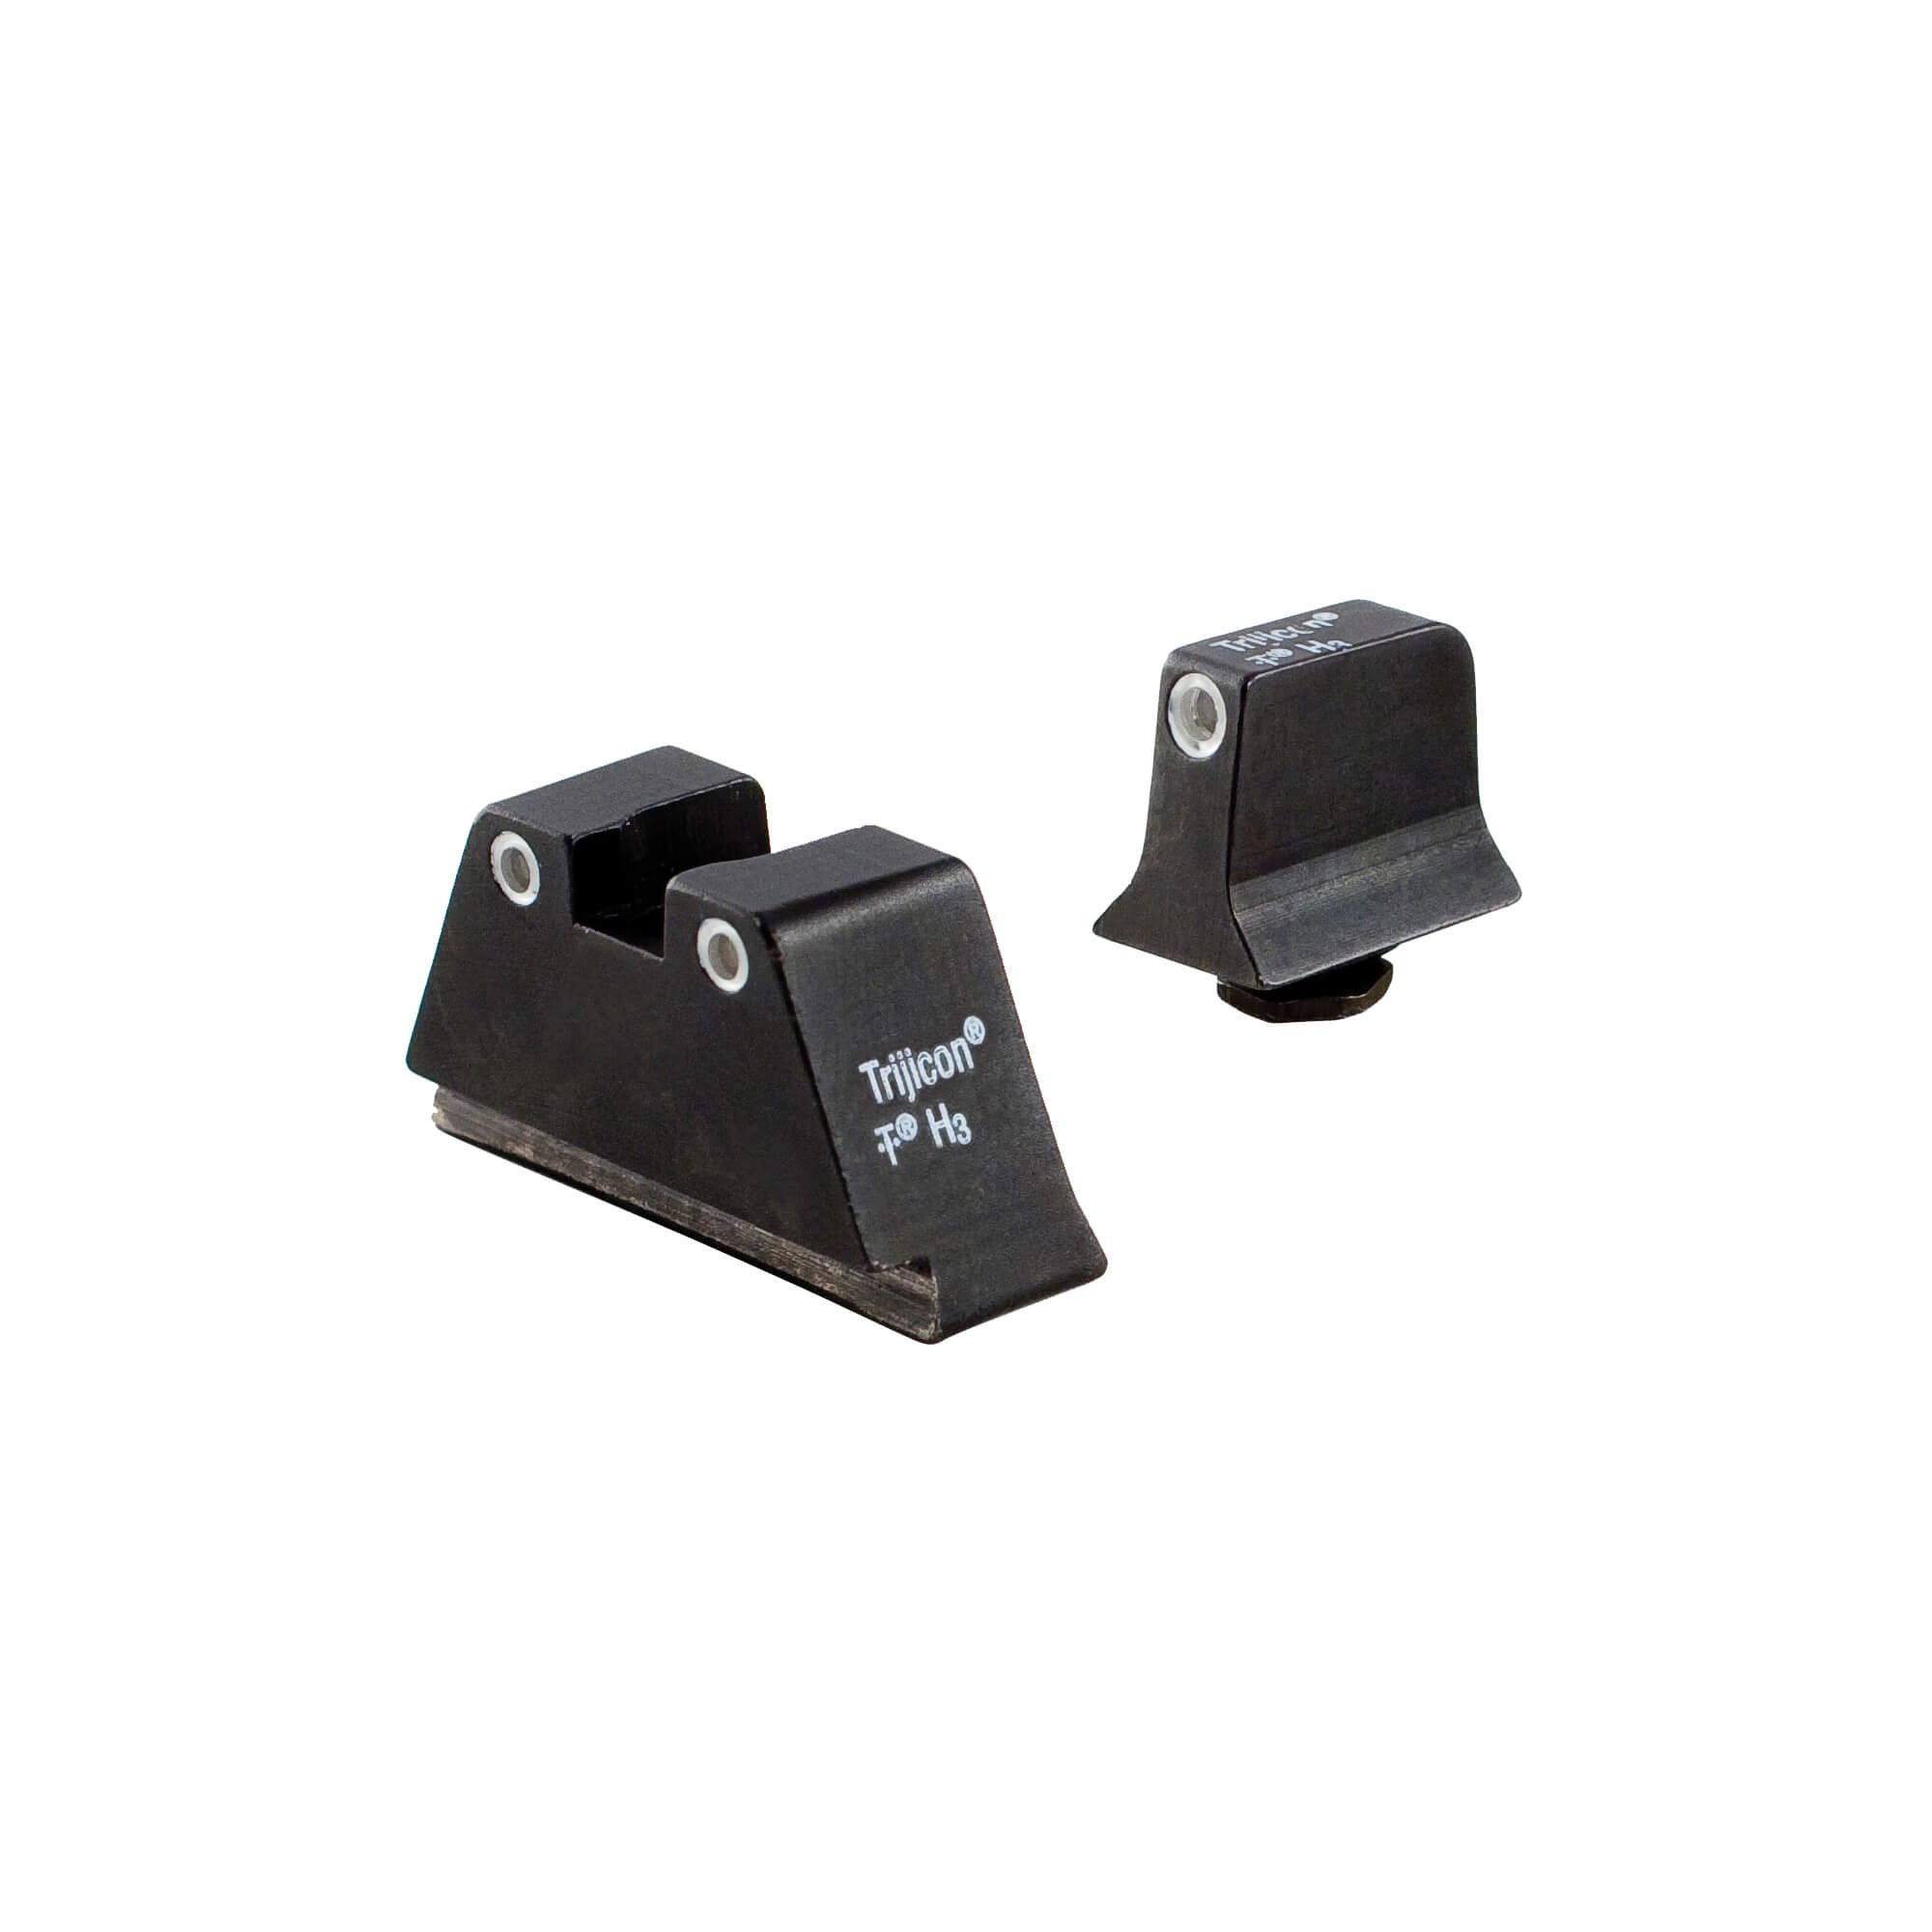 Trijicon Suppressor White Outline Night Sight Set with Green Lamps for Glock Models by Trijicon (Image #1)